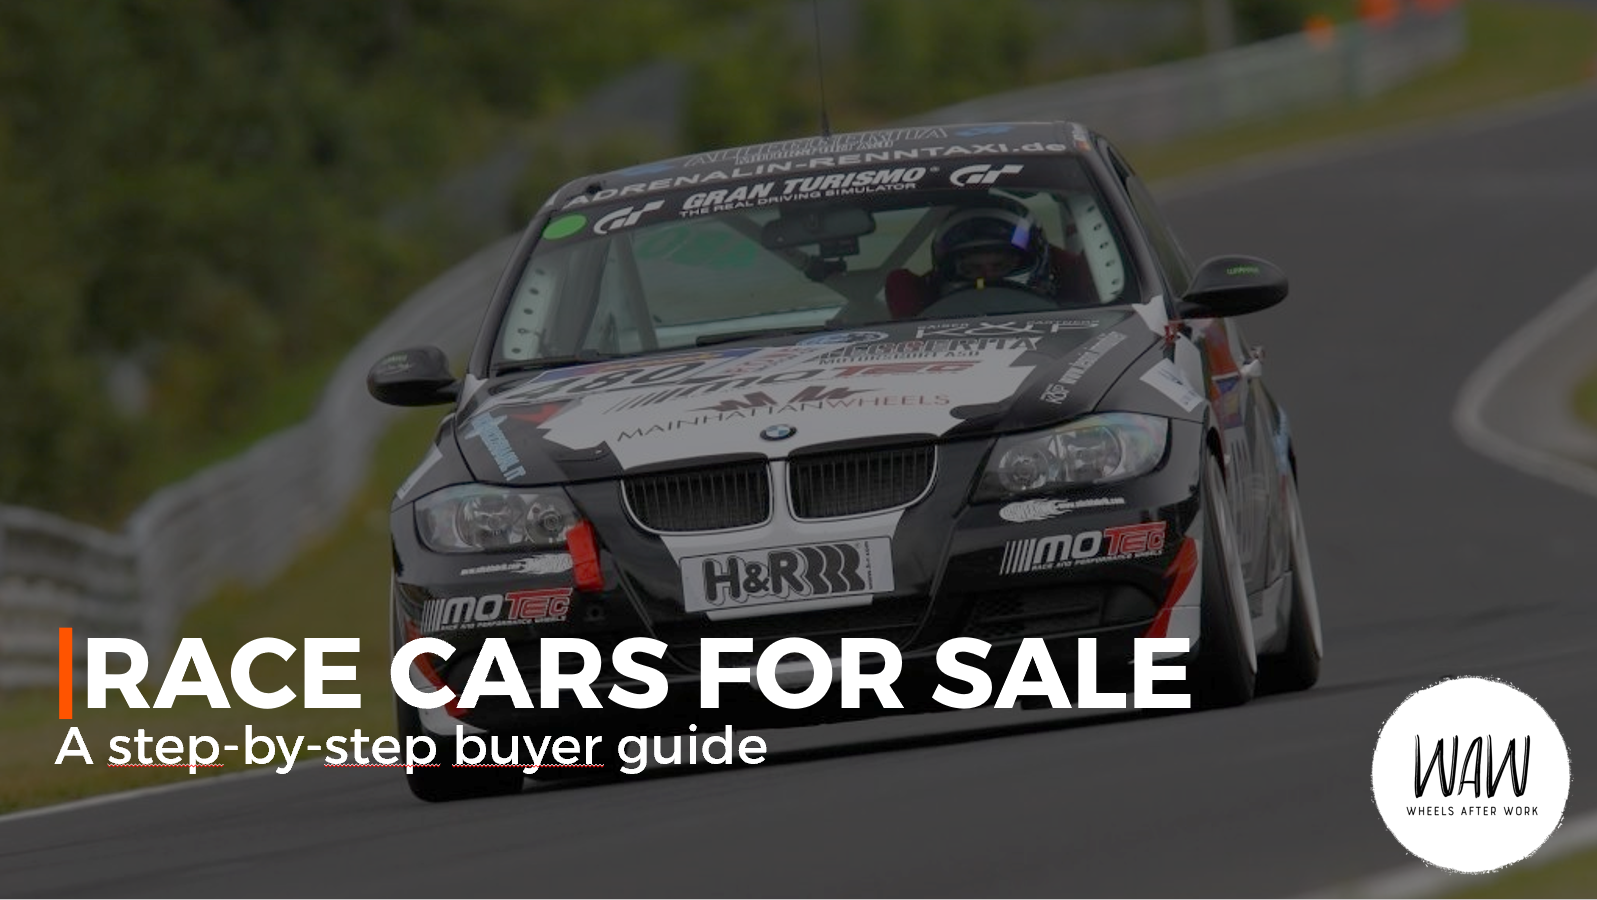 Race Cars for Sale - a step-by-step buyer guide